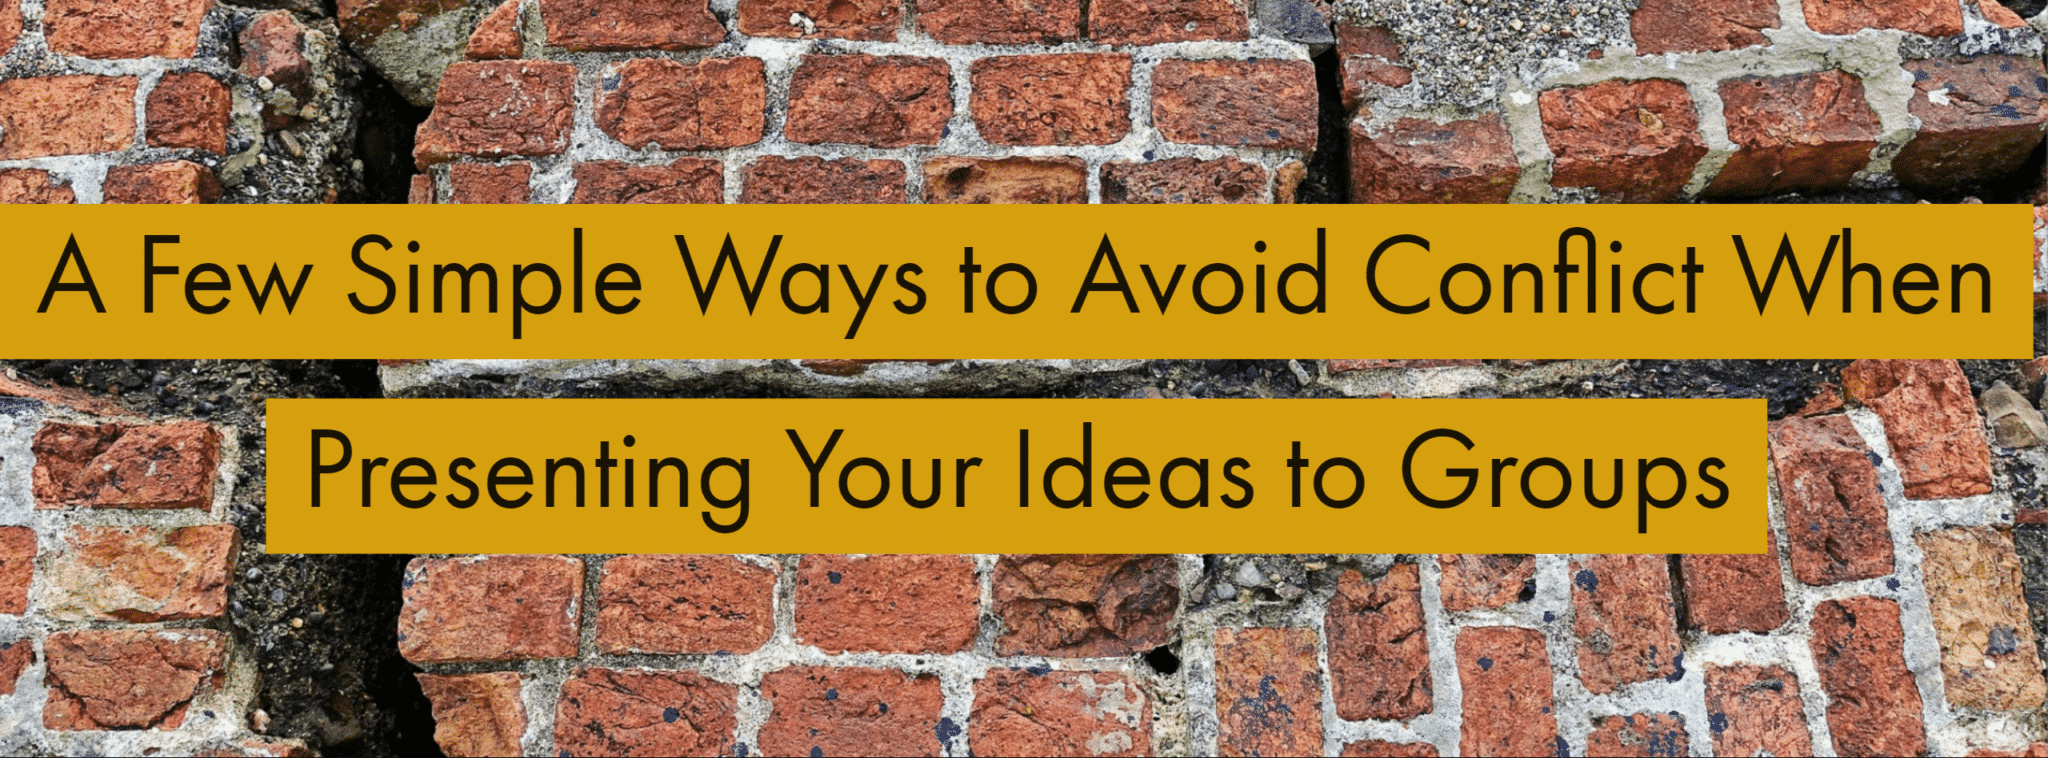 A Few Simple Ways to Avoid Conflict When Presenting Your Ideas to Groups